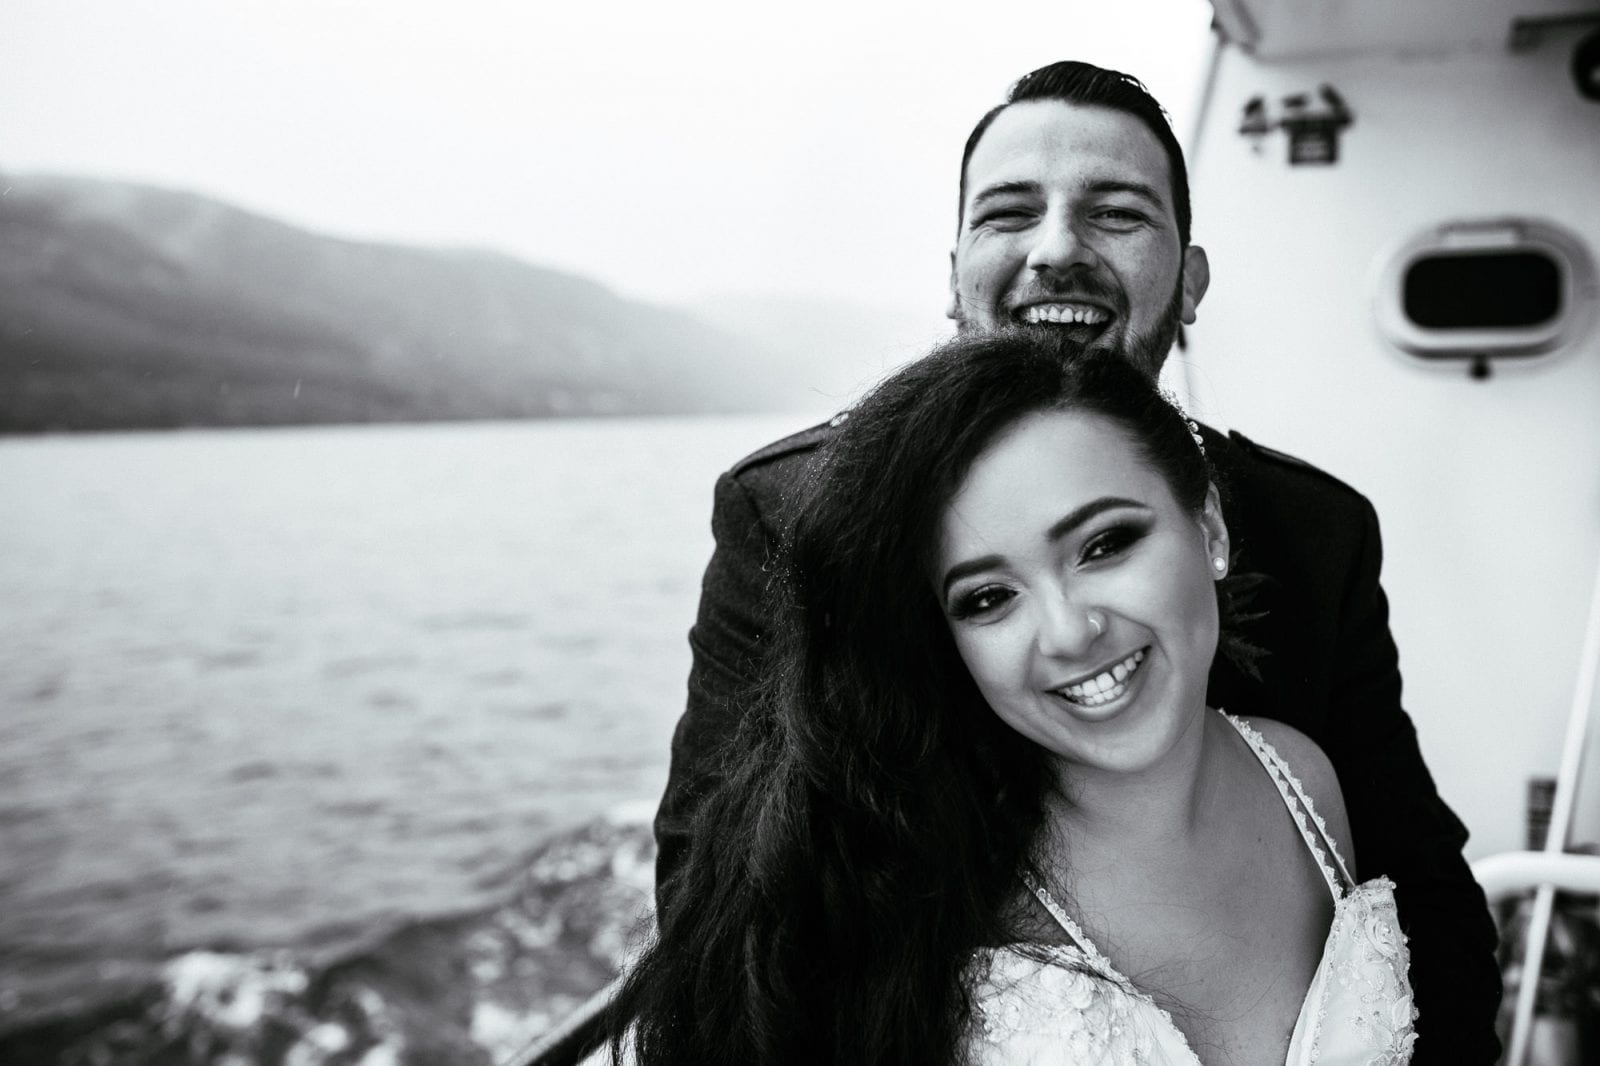 Bride and groom portrait on a boat on Loch Ness